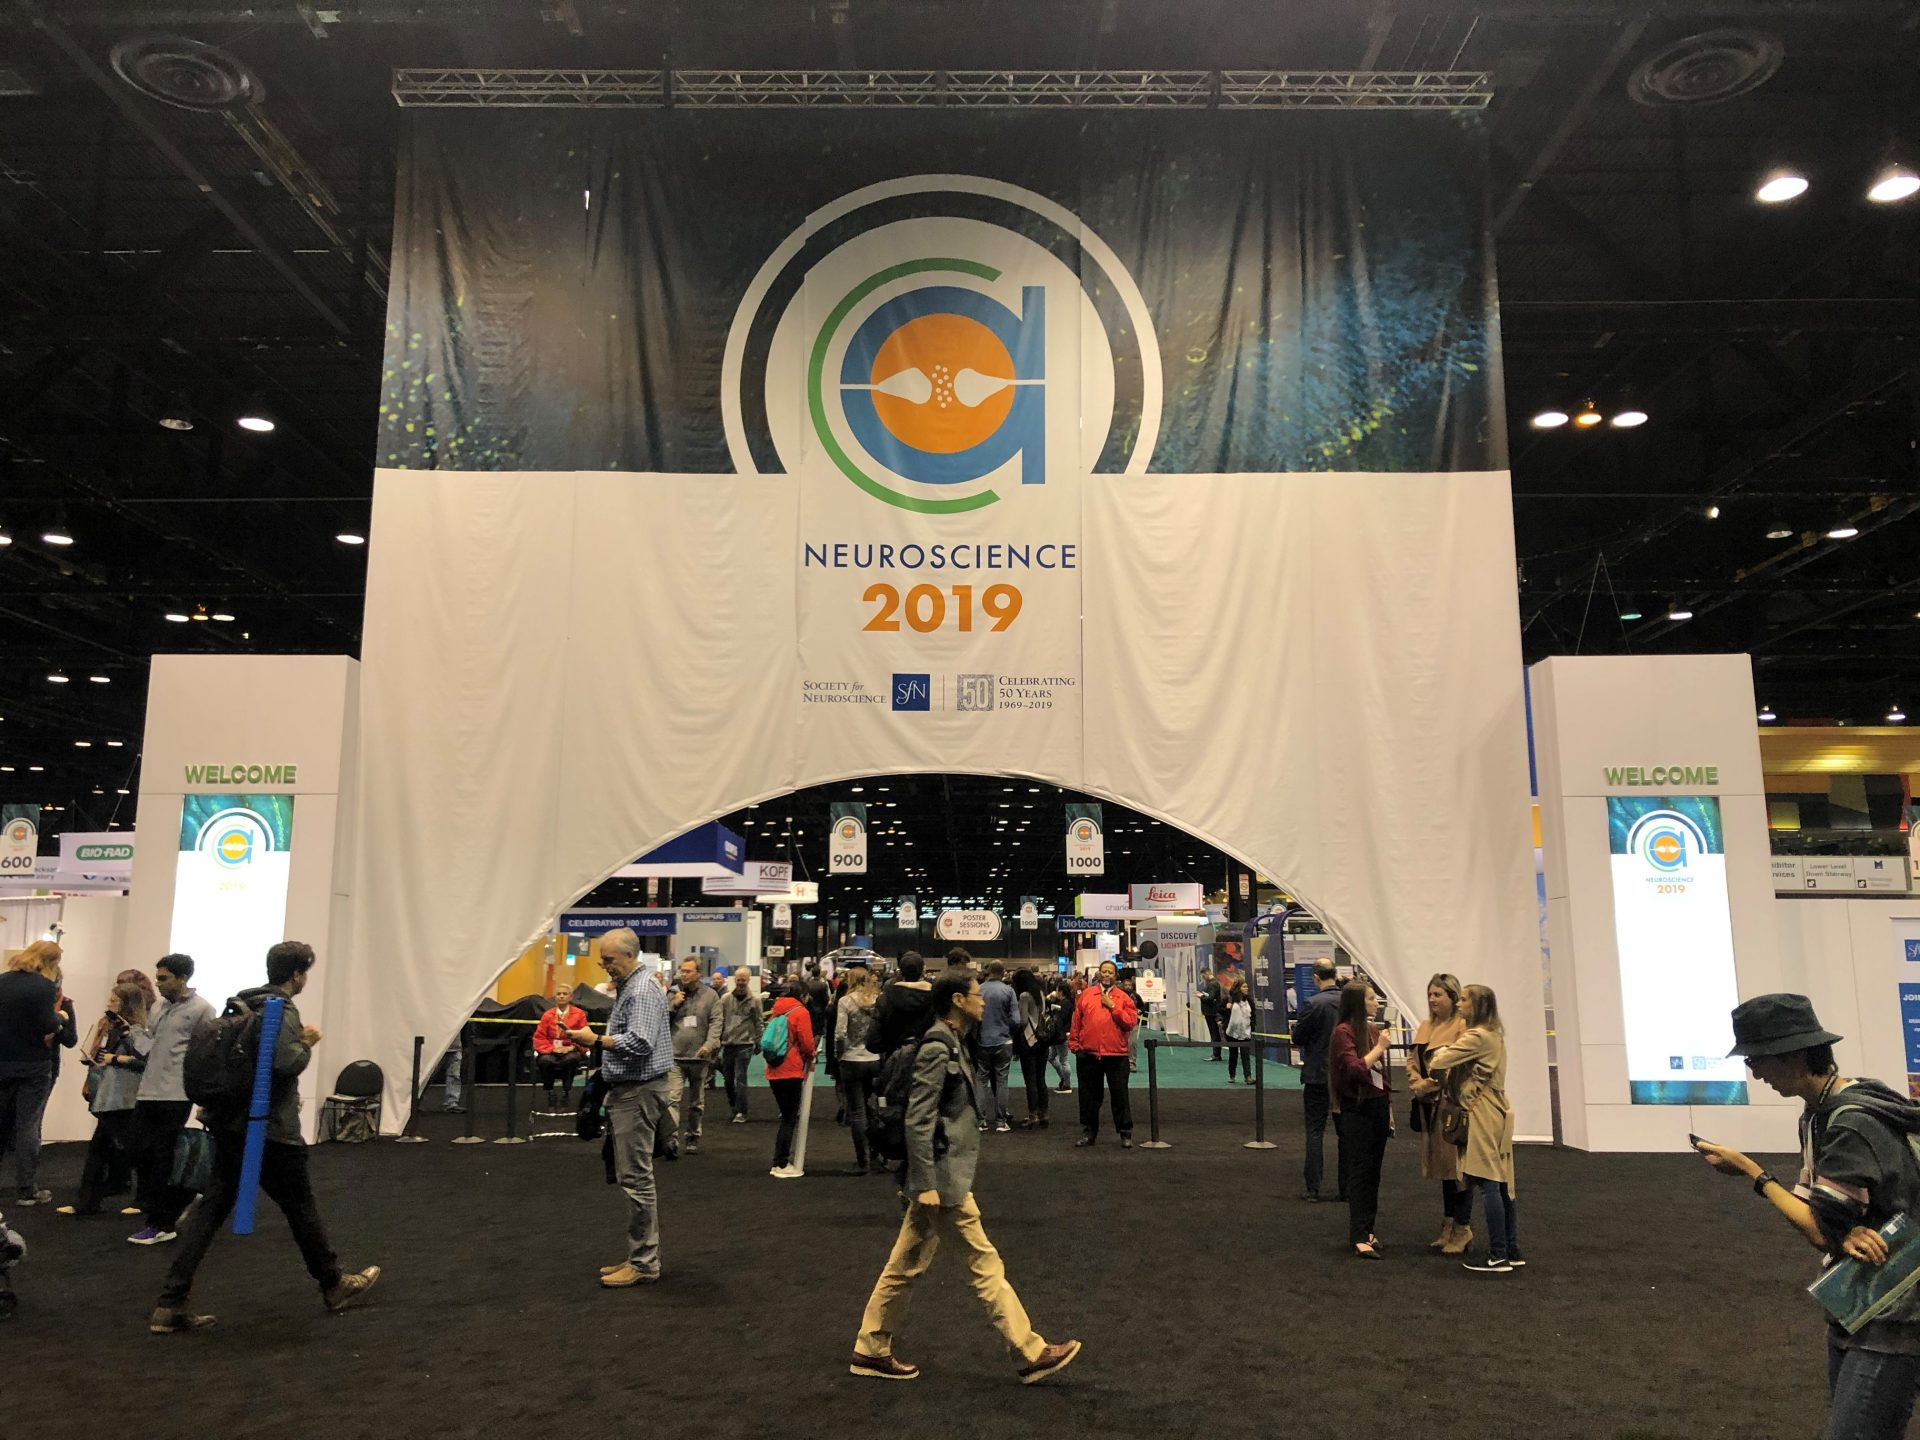 Neuroscience 2019 Conference